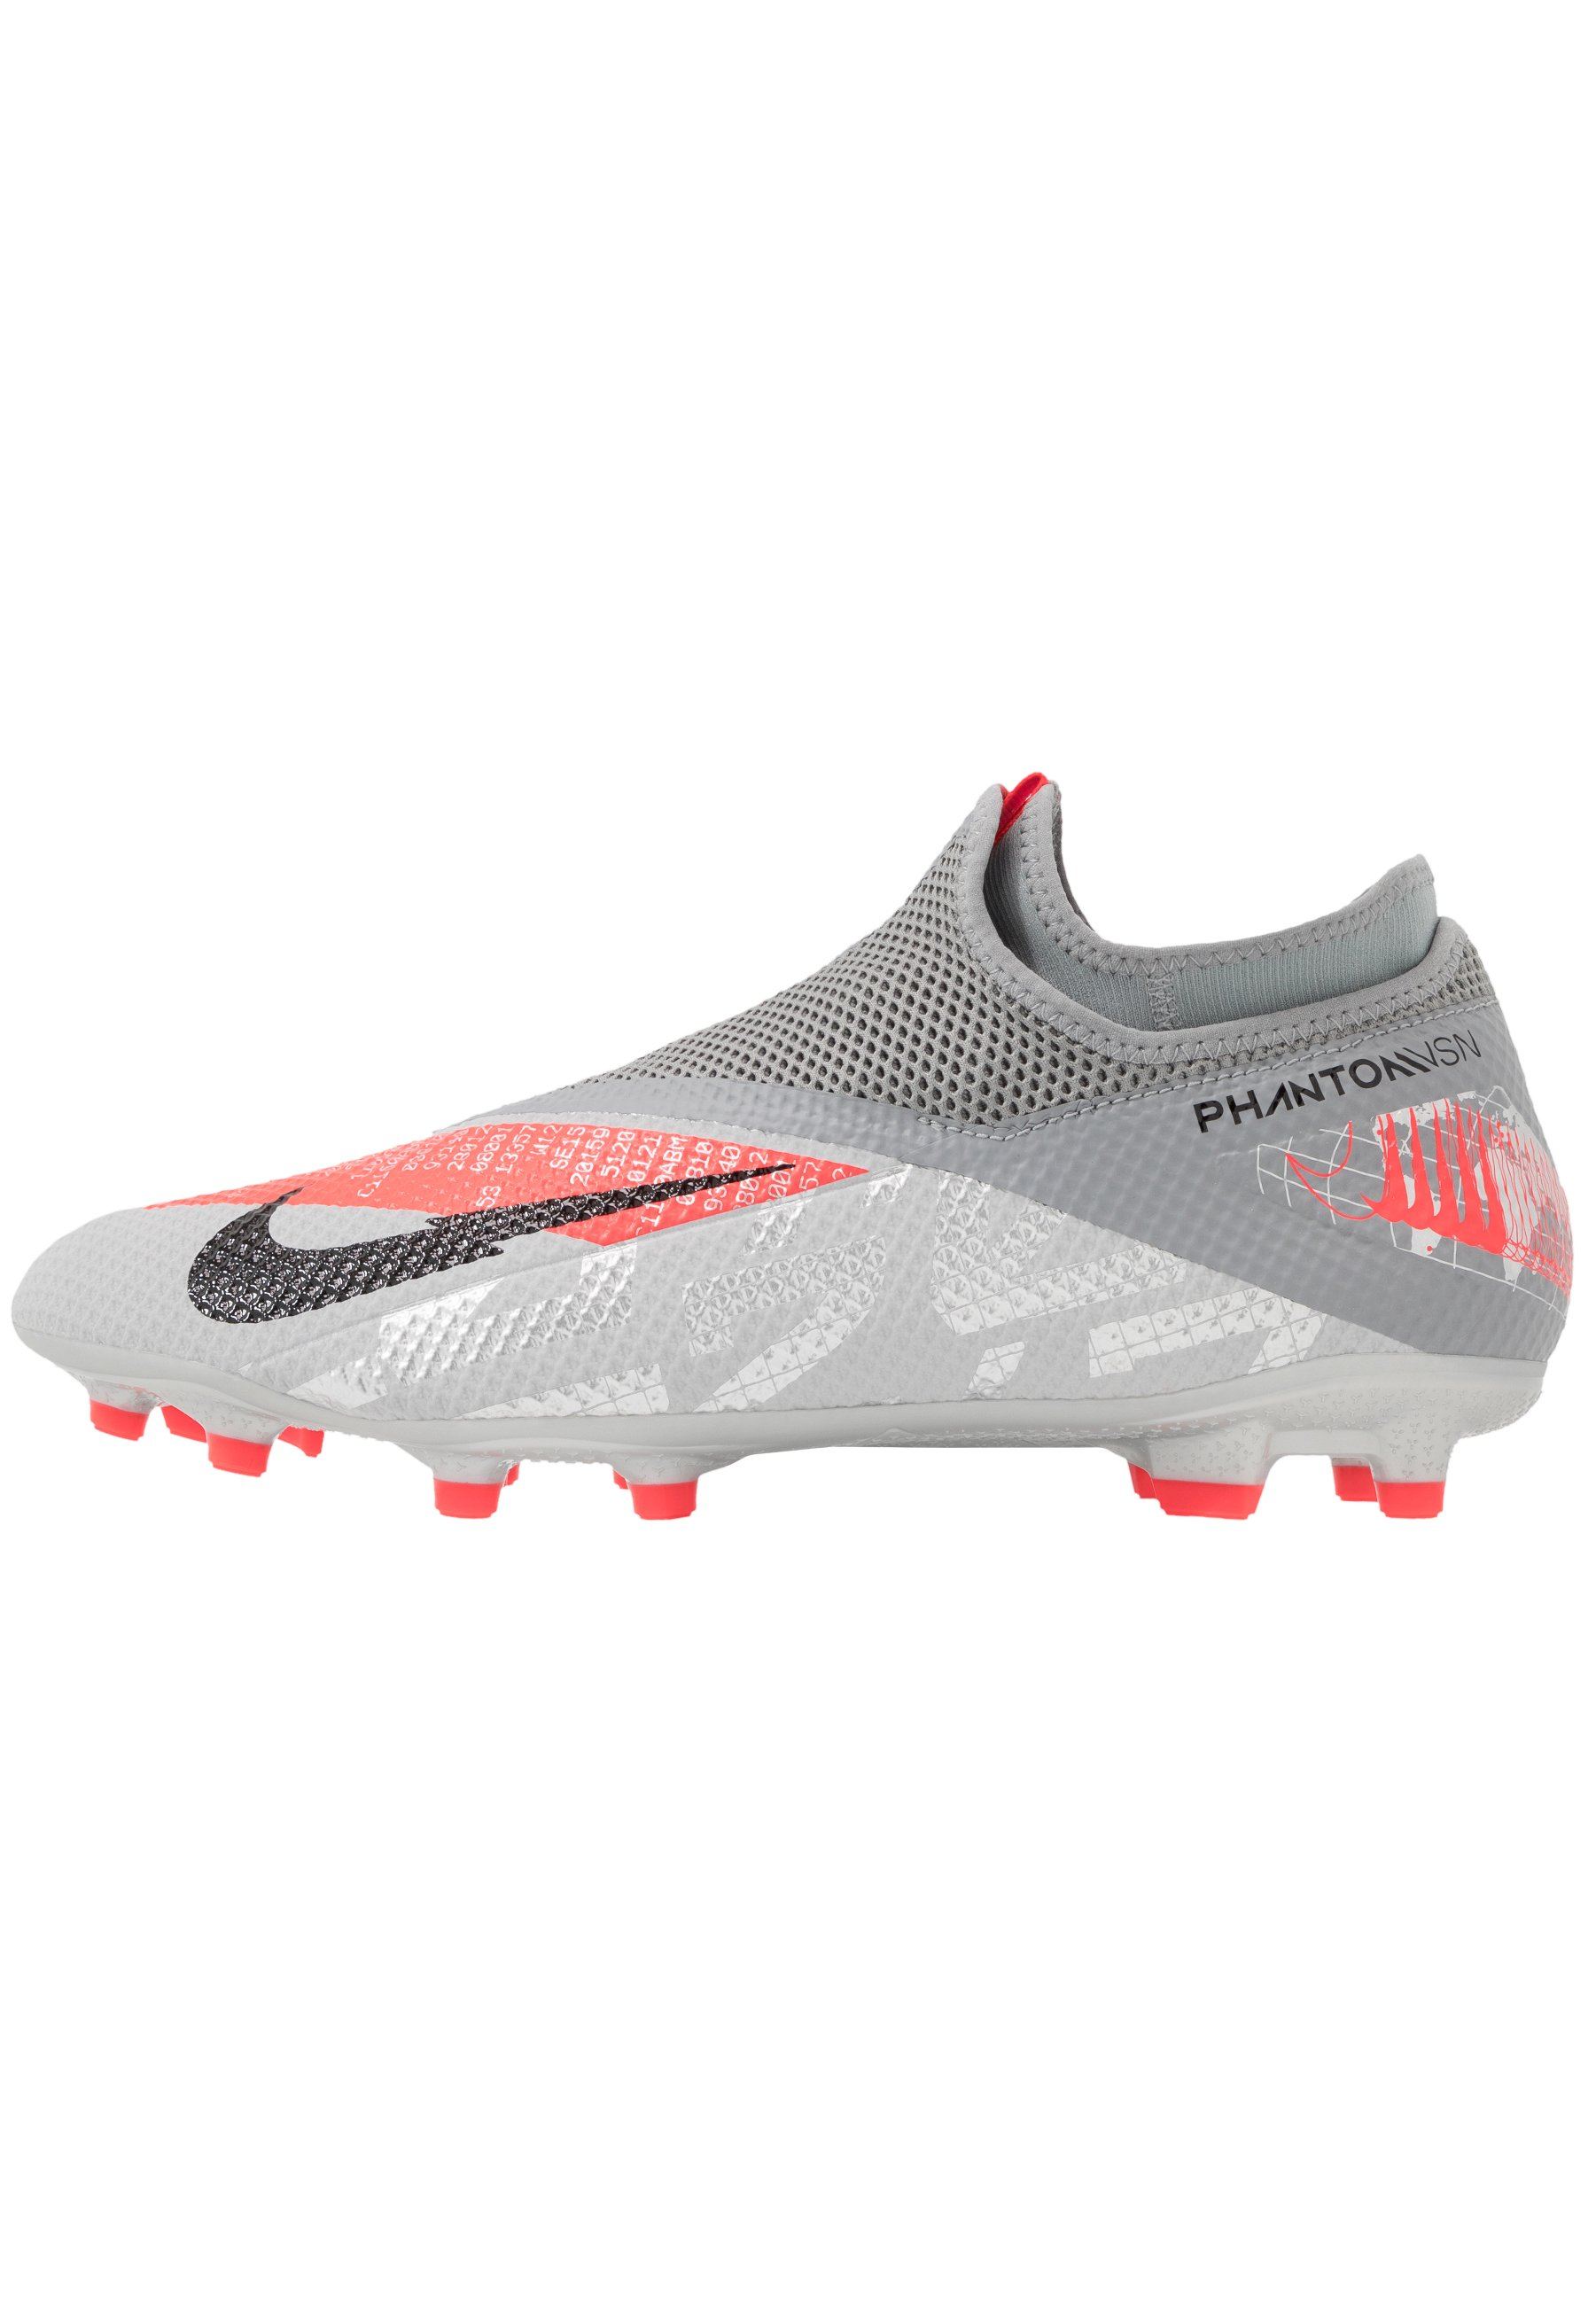 PHANTOM VISION 2 ACADEMY DF FGMG Chaussures de foot à crampons metallic bomber greyblackparticle grey